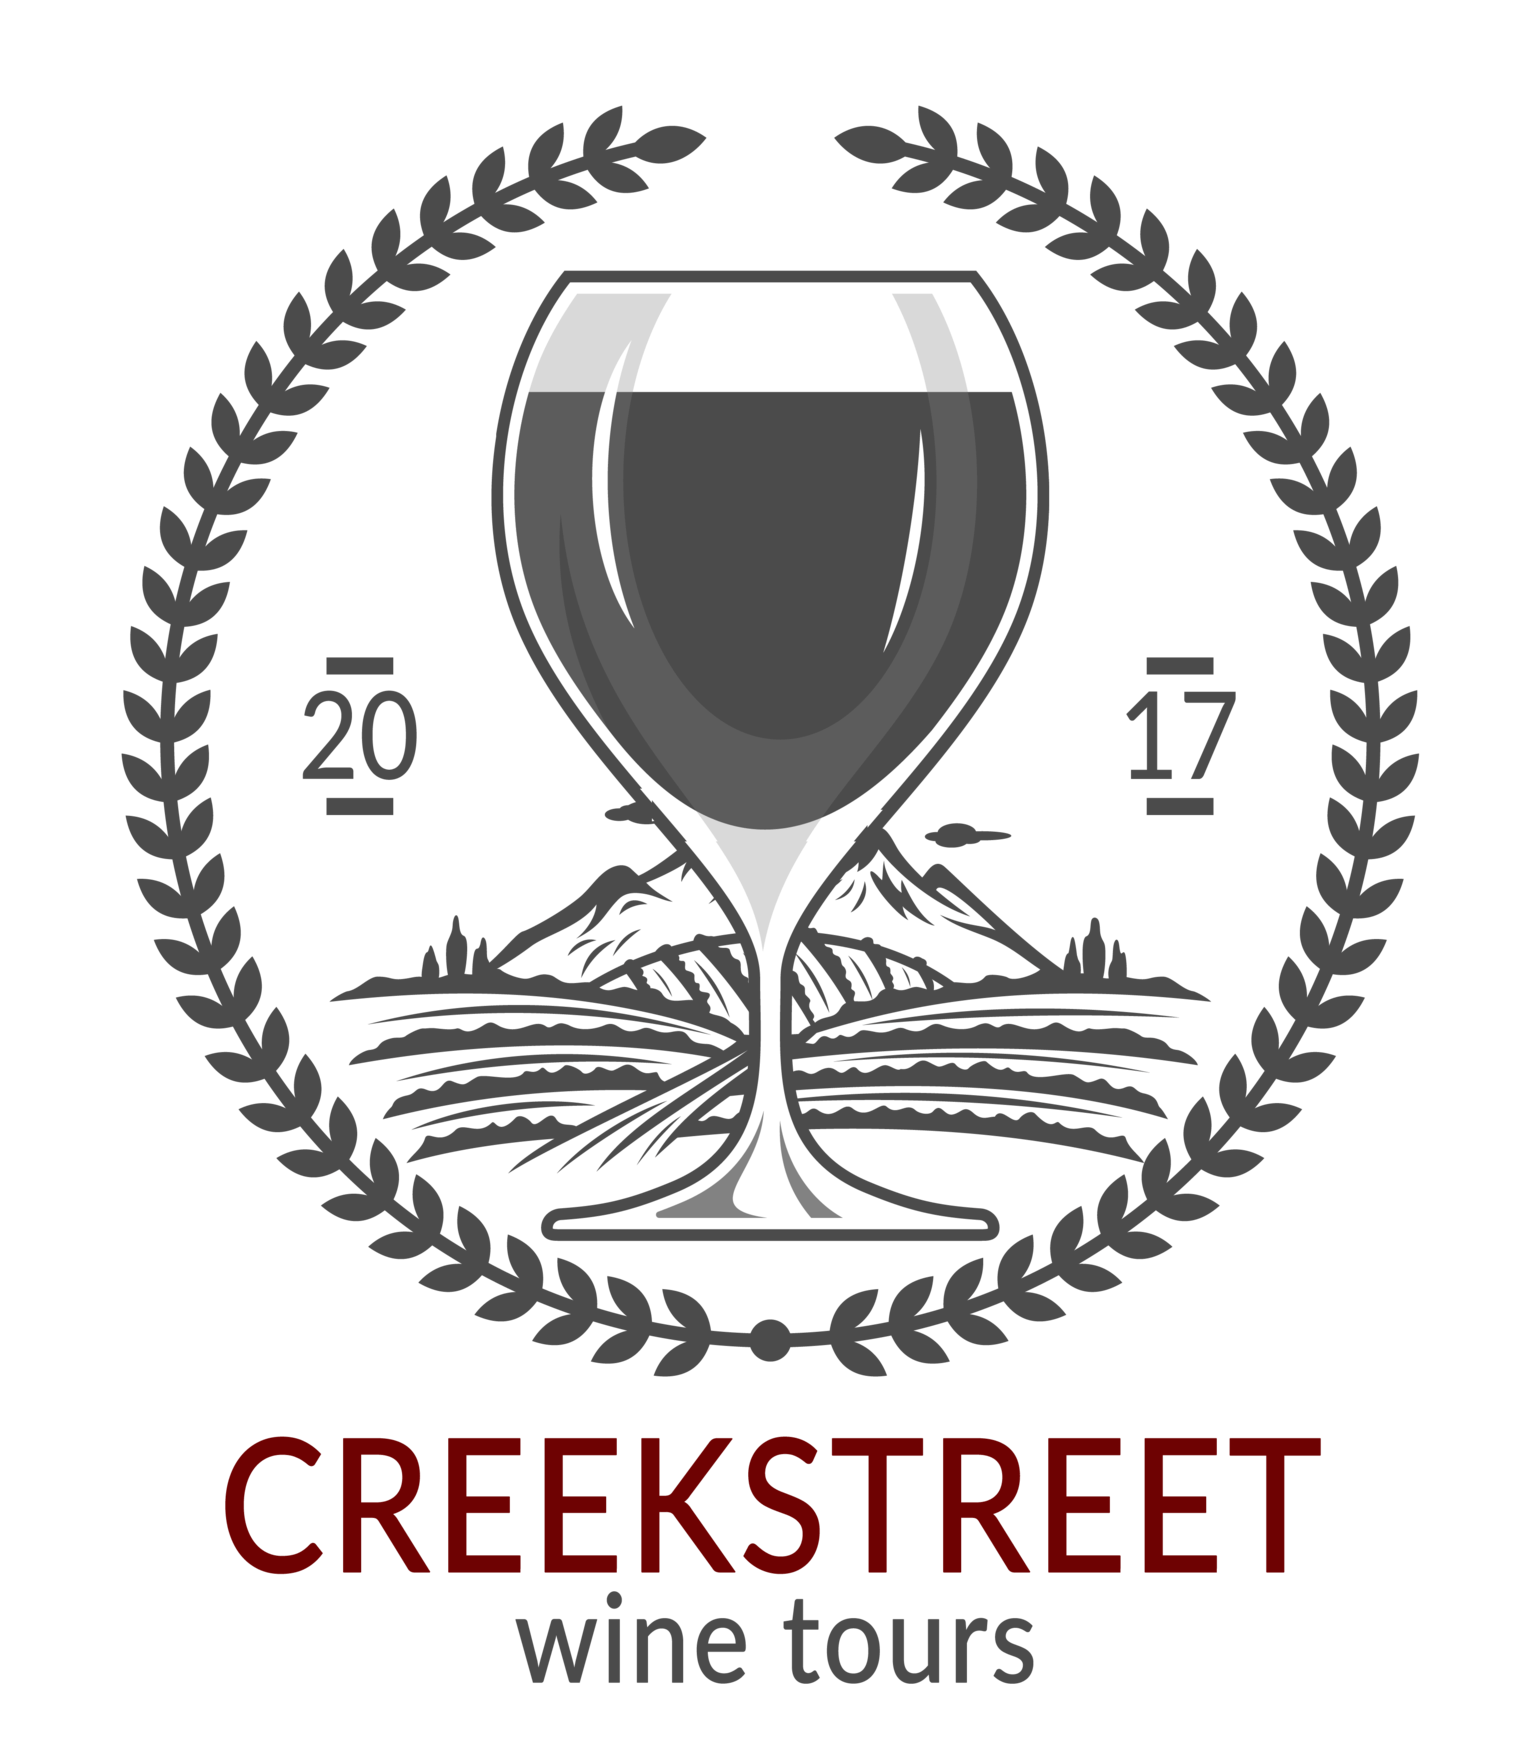 creekstreet wine tours of Fredericksburg, Texas